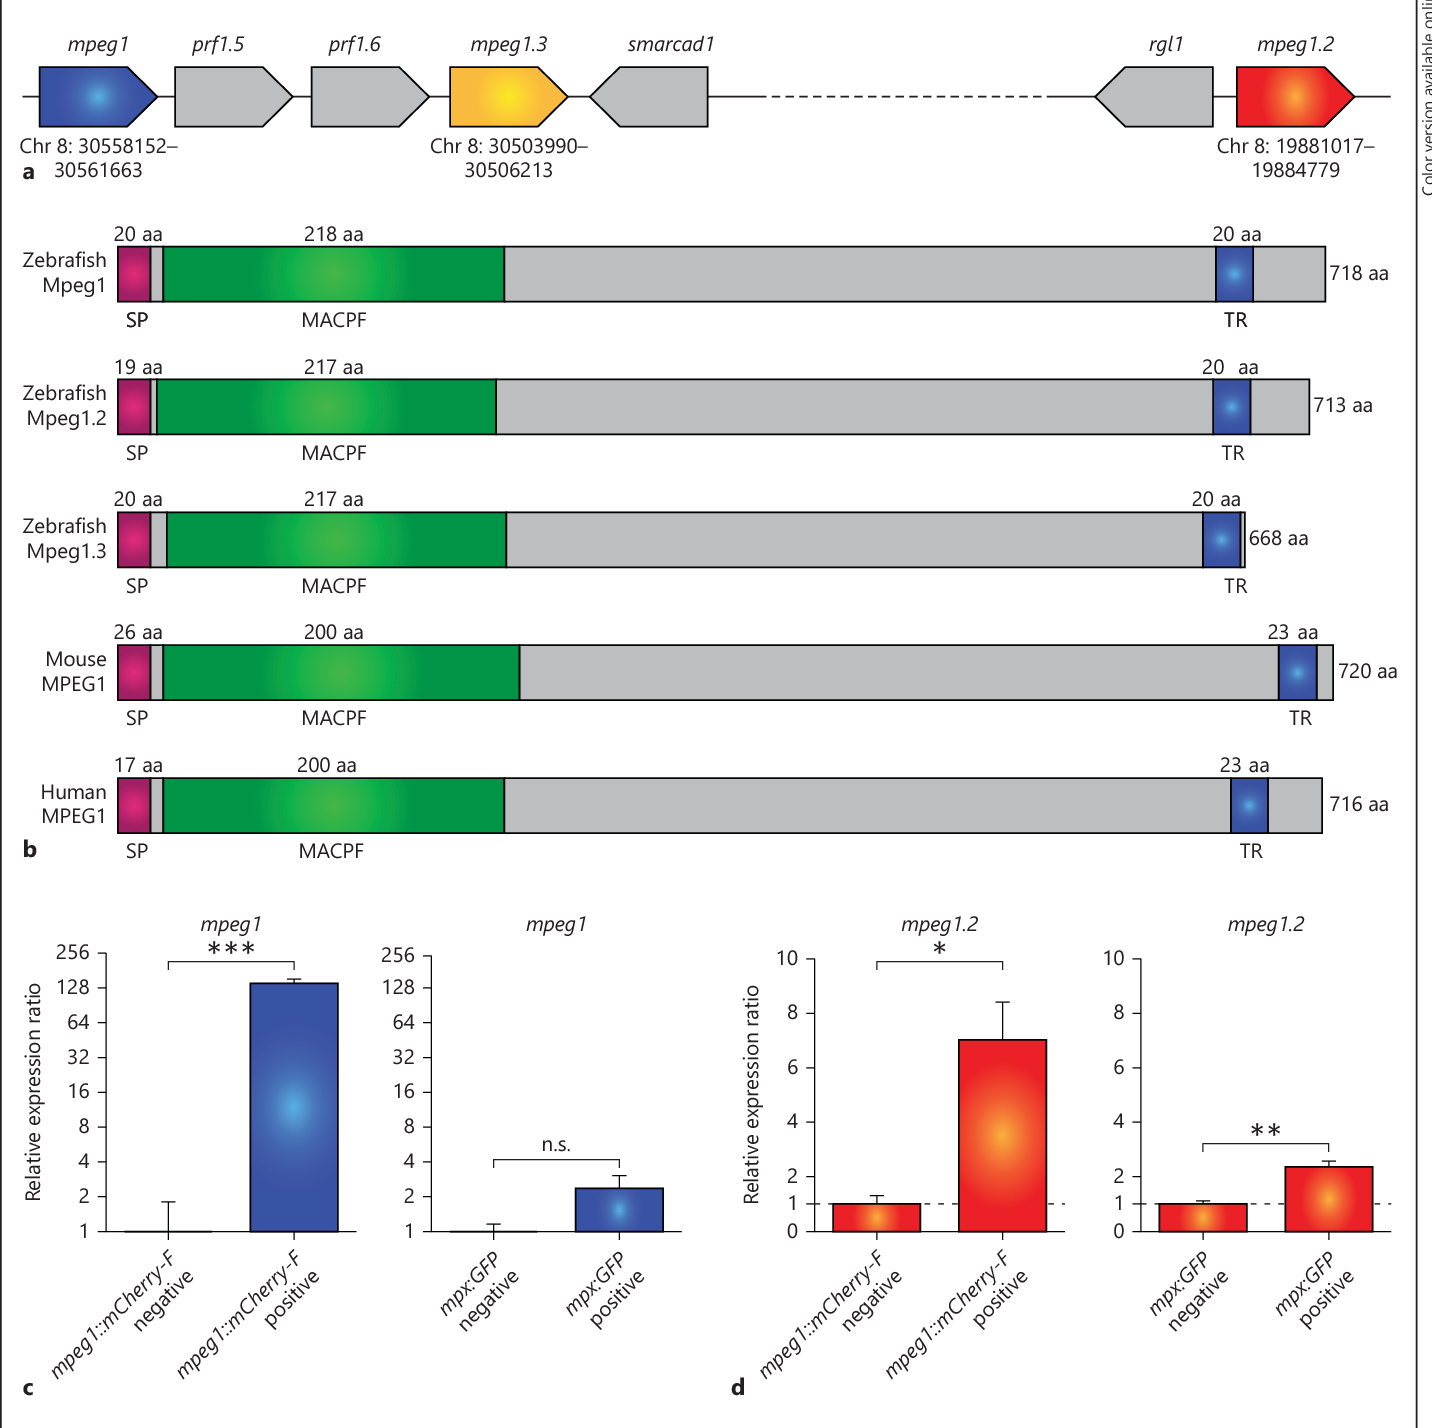 Figure 1 From Macrophage Expressed Perforins Mpeg1 And Mpeg12 Have Mpeg Block Diagram Zebrafish Genes Encode Proteins With Conserved Transmembrane Macpf Domains